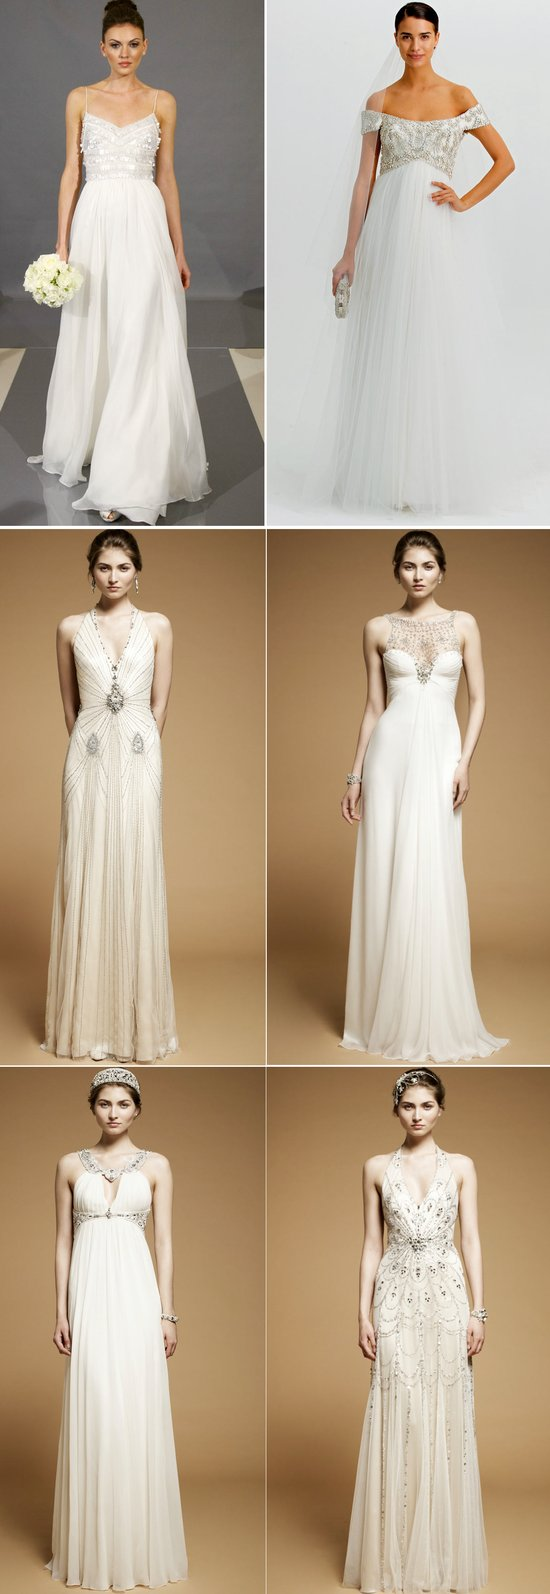 beaded wedding dresses 2012 bridal gown marchesa jenny packham